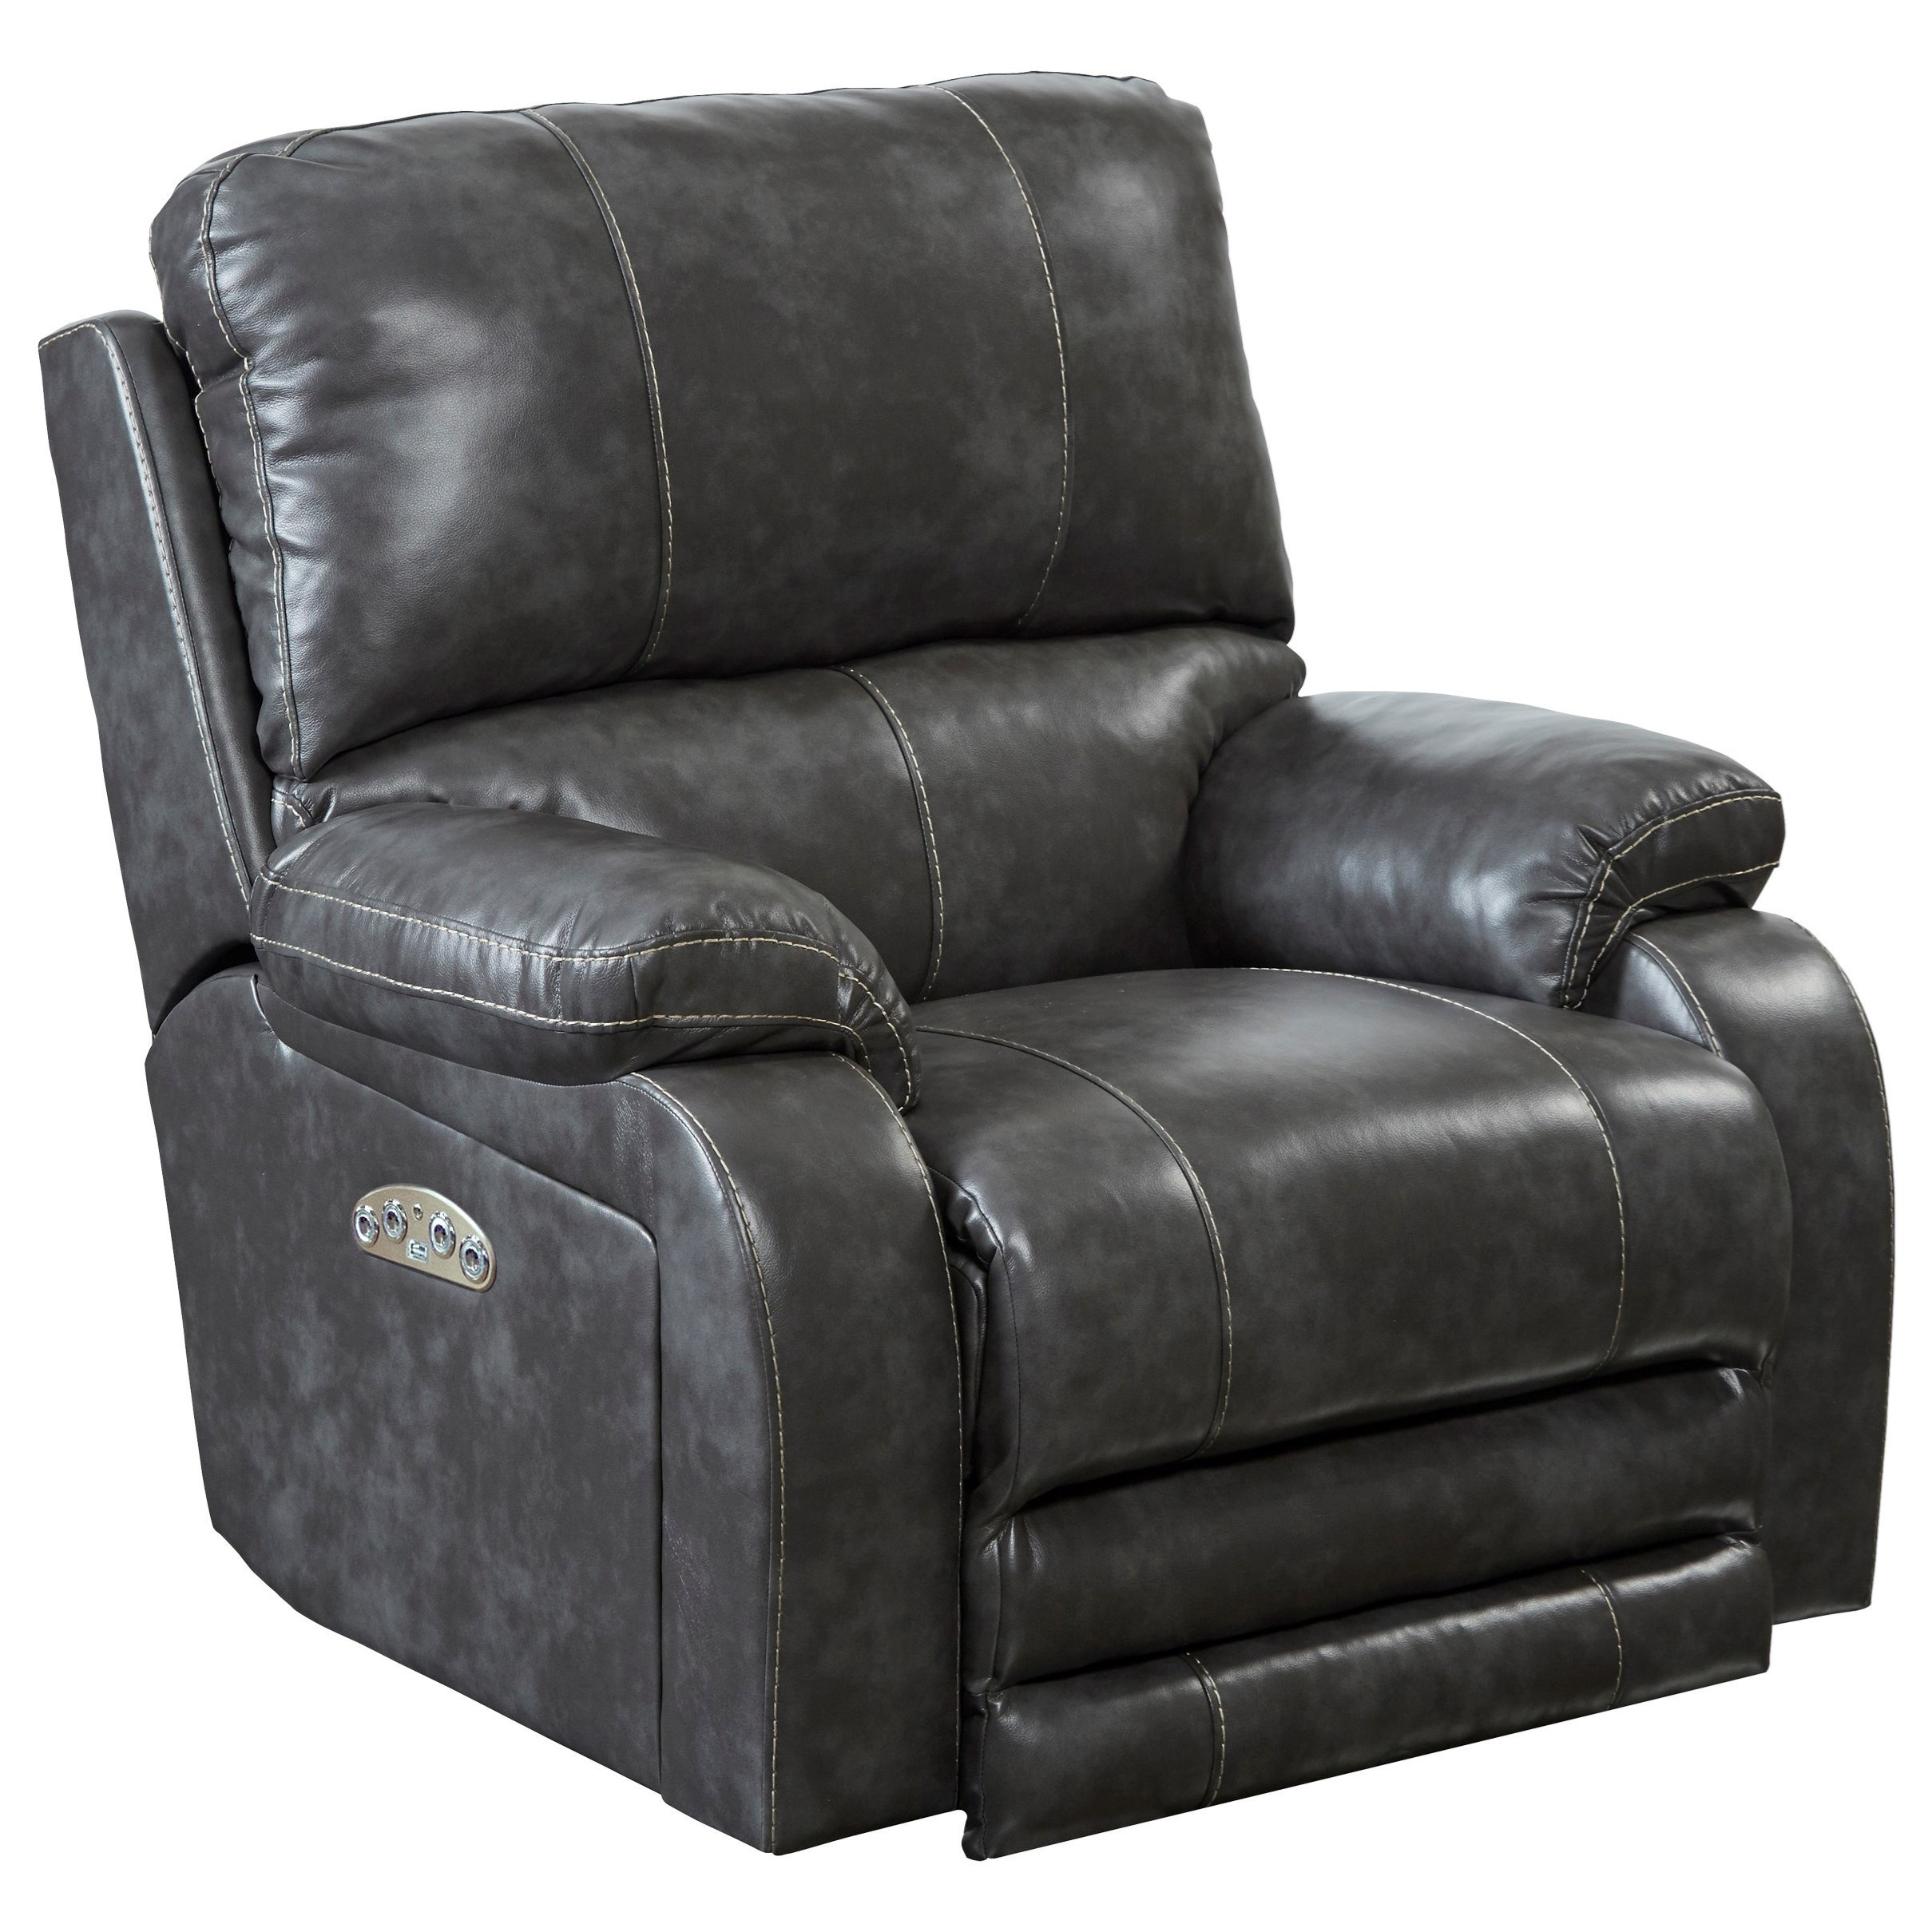 Thornton Pwr Lay Flat Recliner w/ Pwr Head